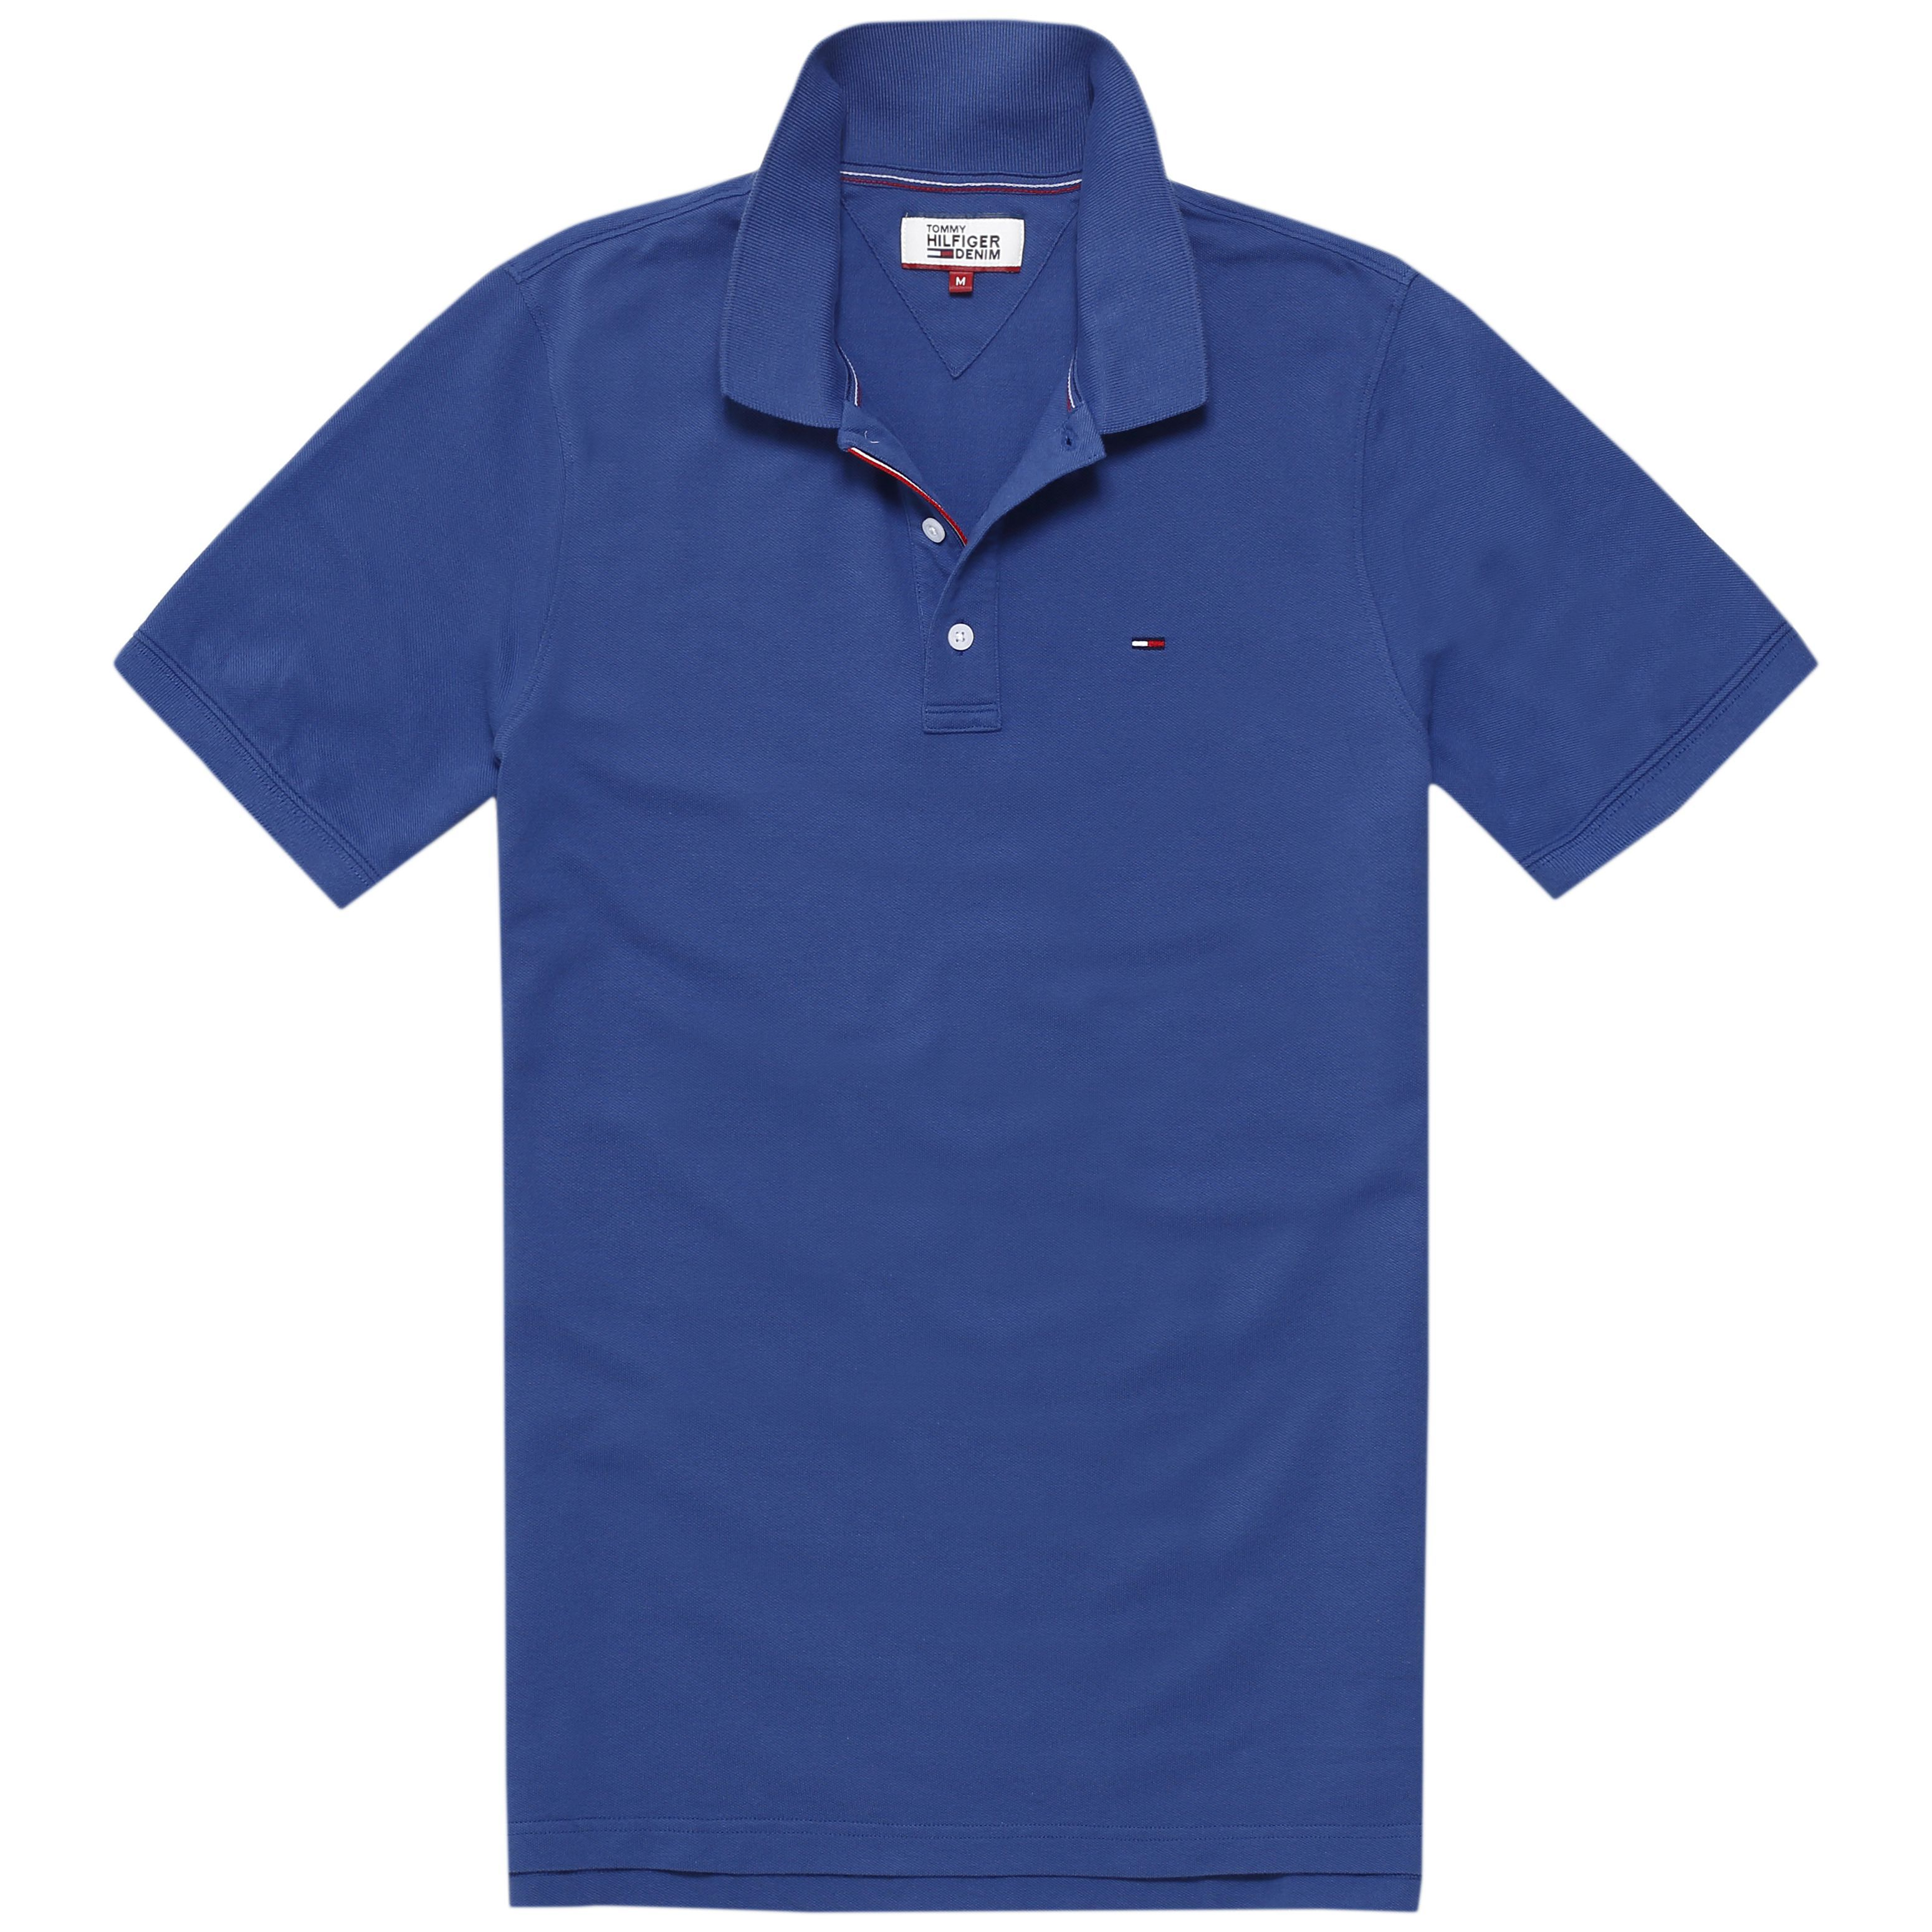 Men's Tommy Hilfiger Basic Short Sleeve Polo, Mid Blue